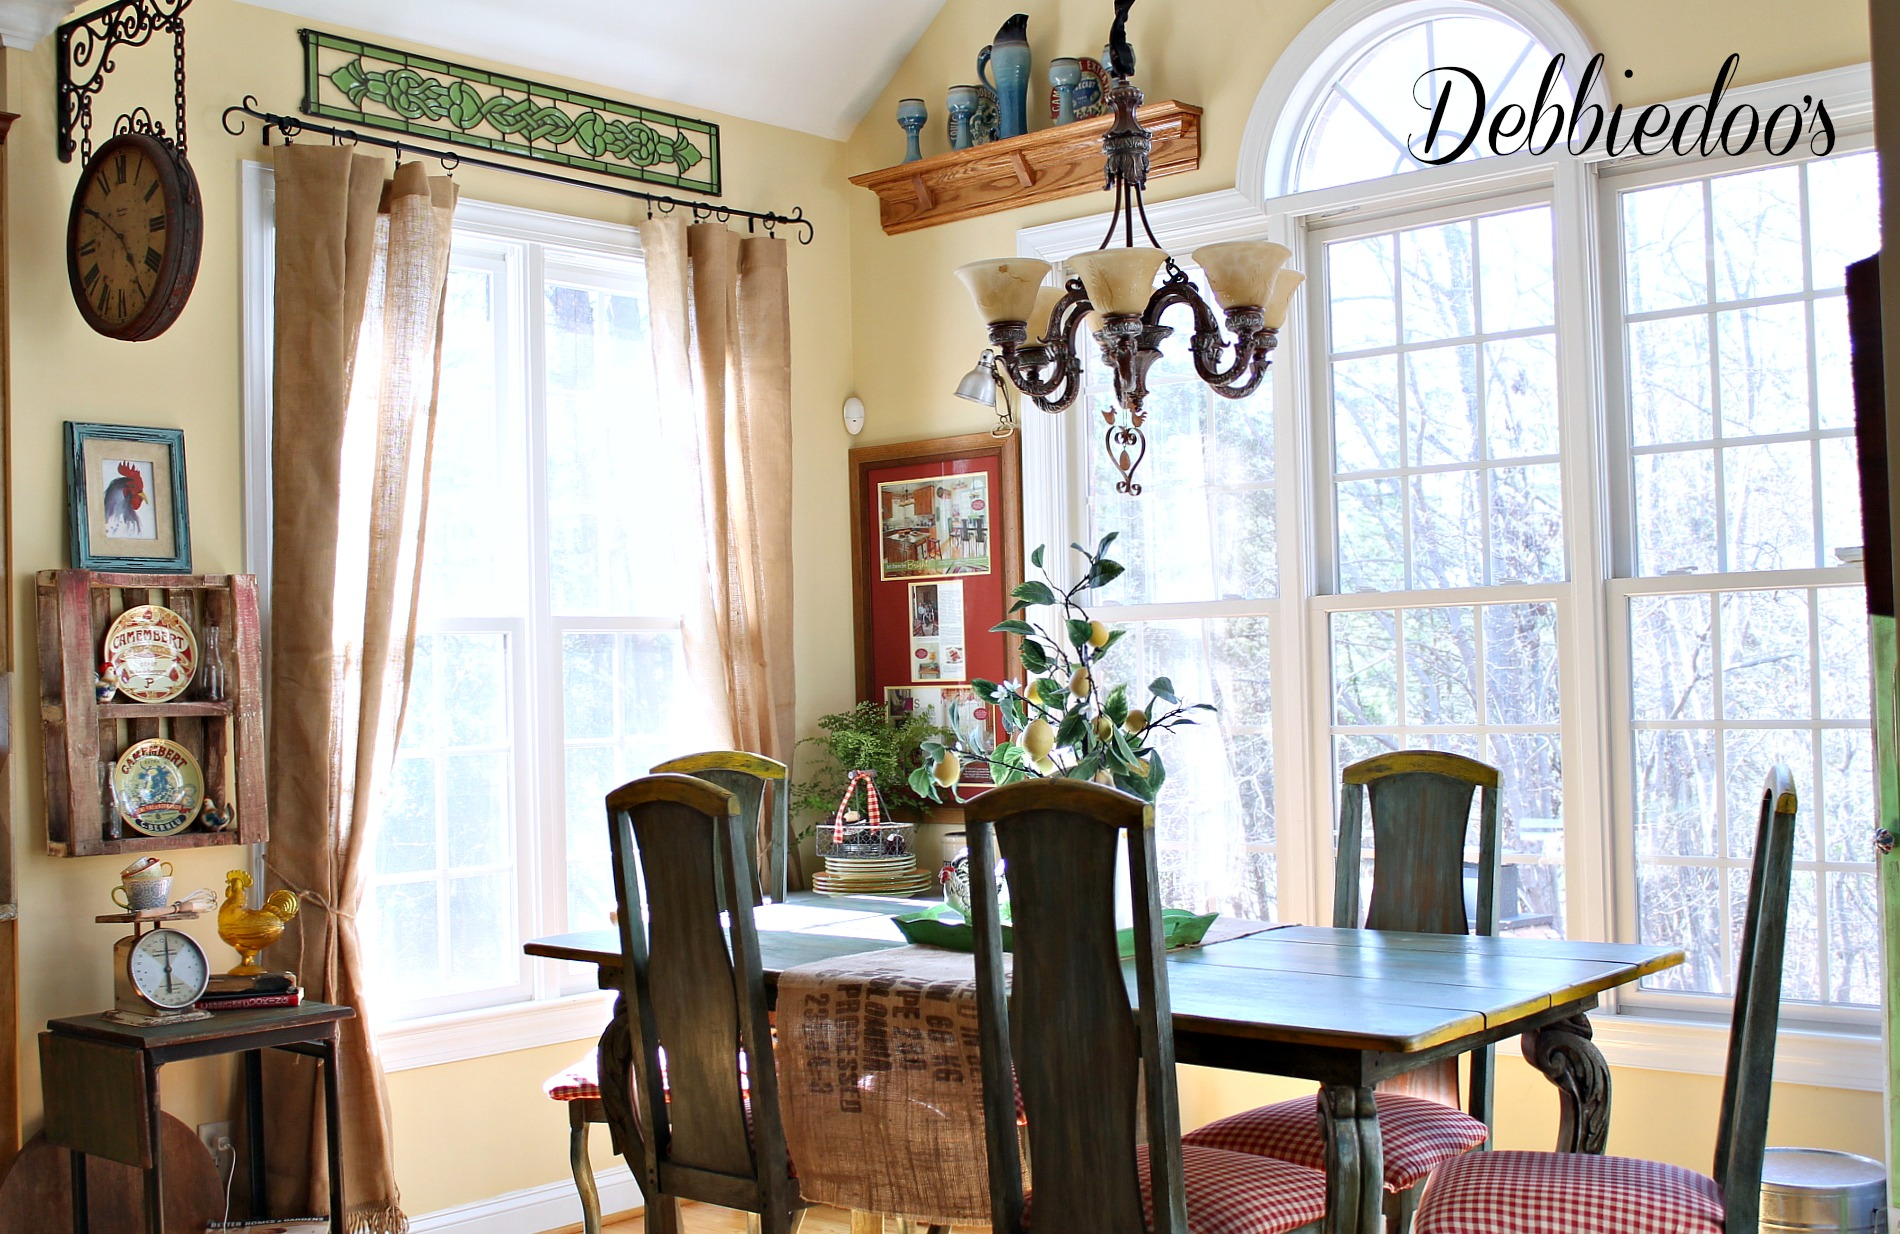 french country kitchen style freshened up debbiedoos kitchen french country style 007